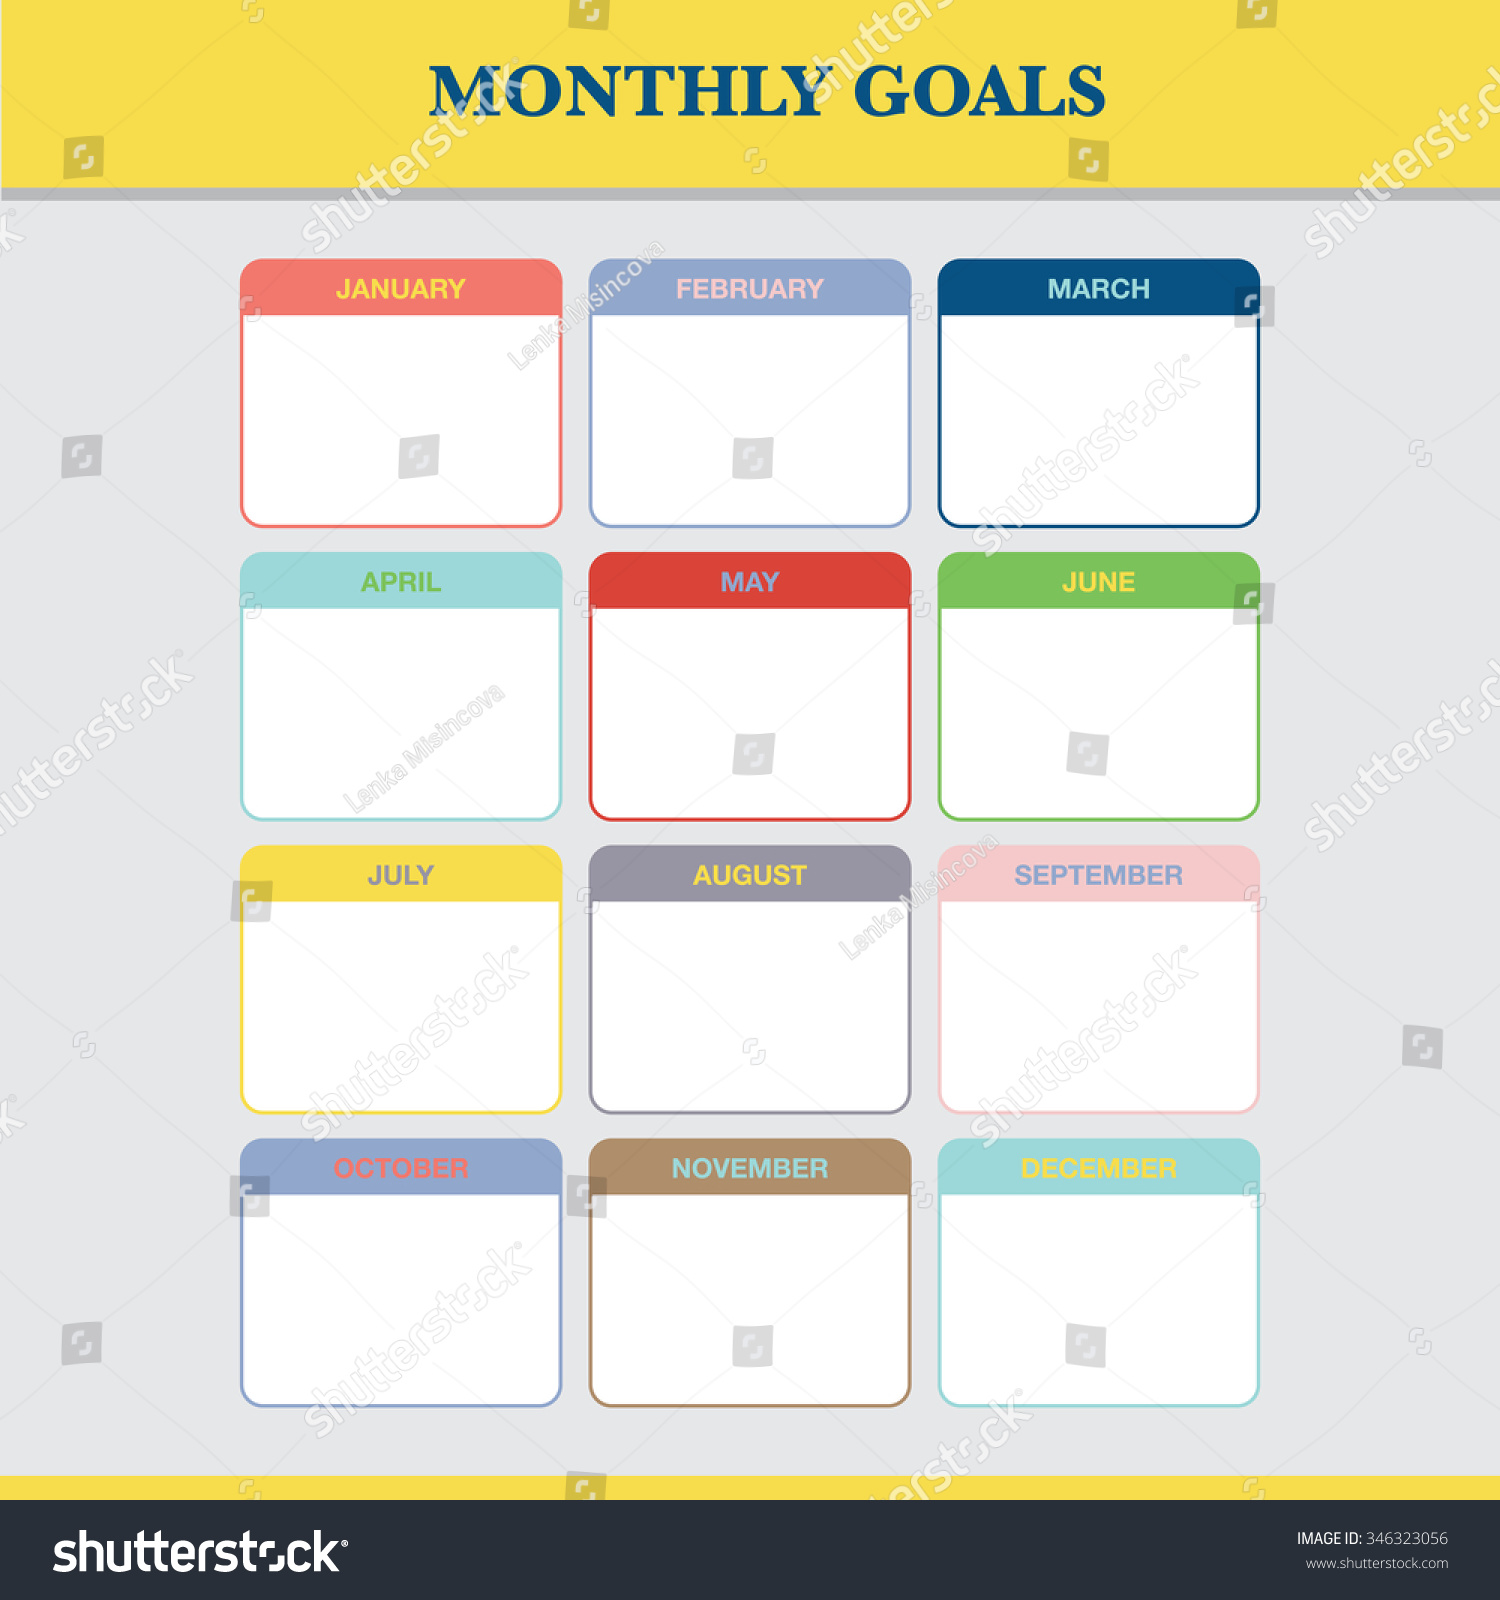 Blank Vector Calendar Template : Monthly goals calendar template year stock vector